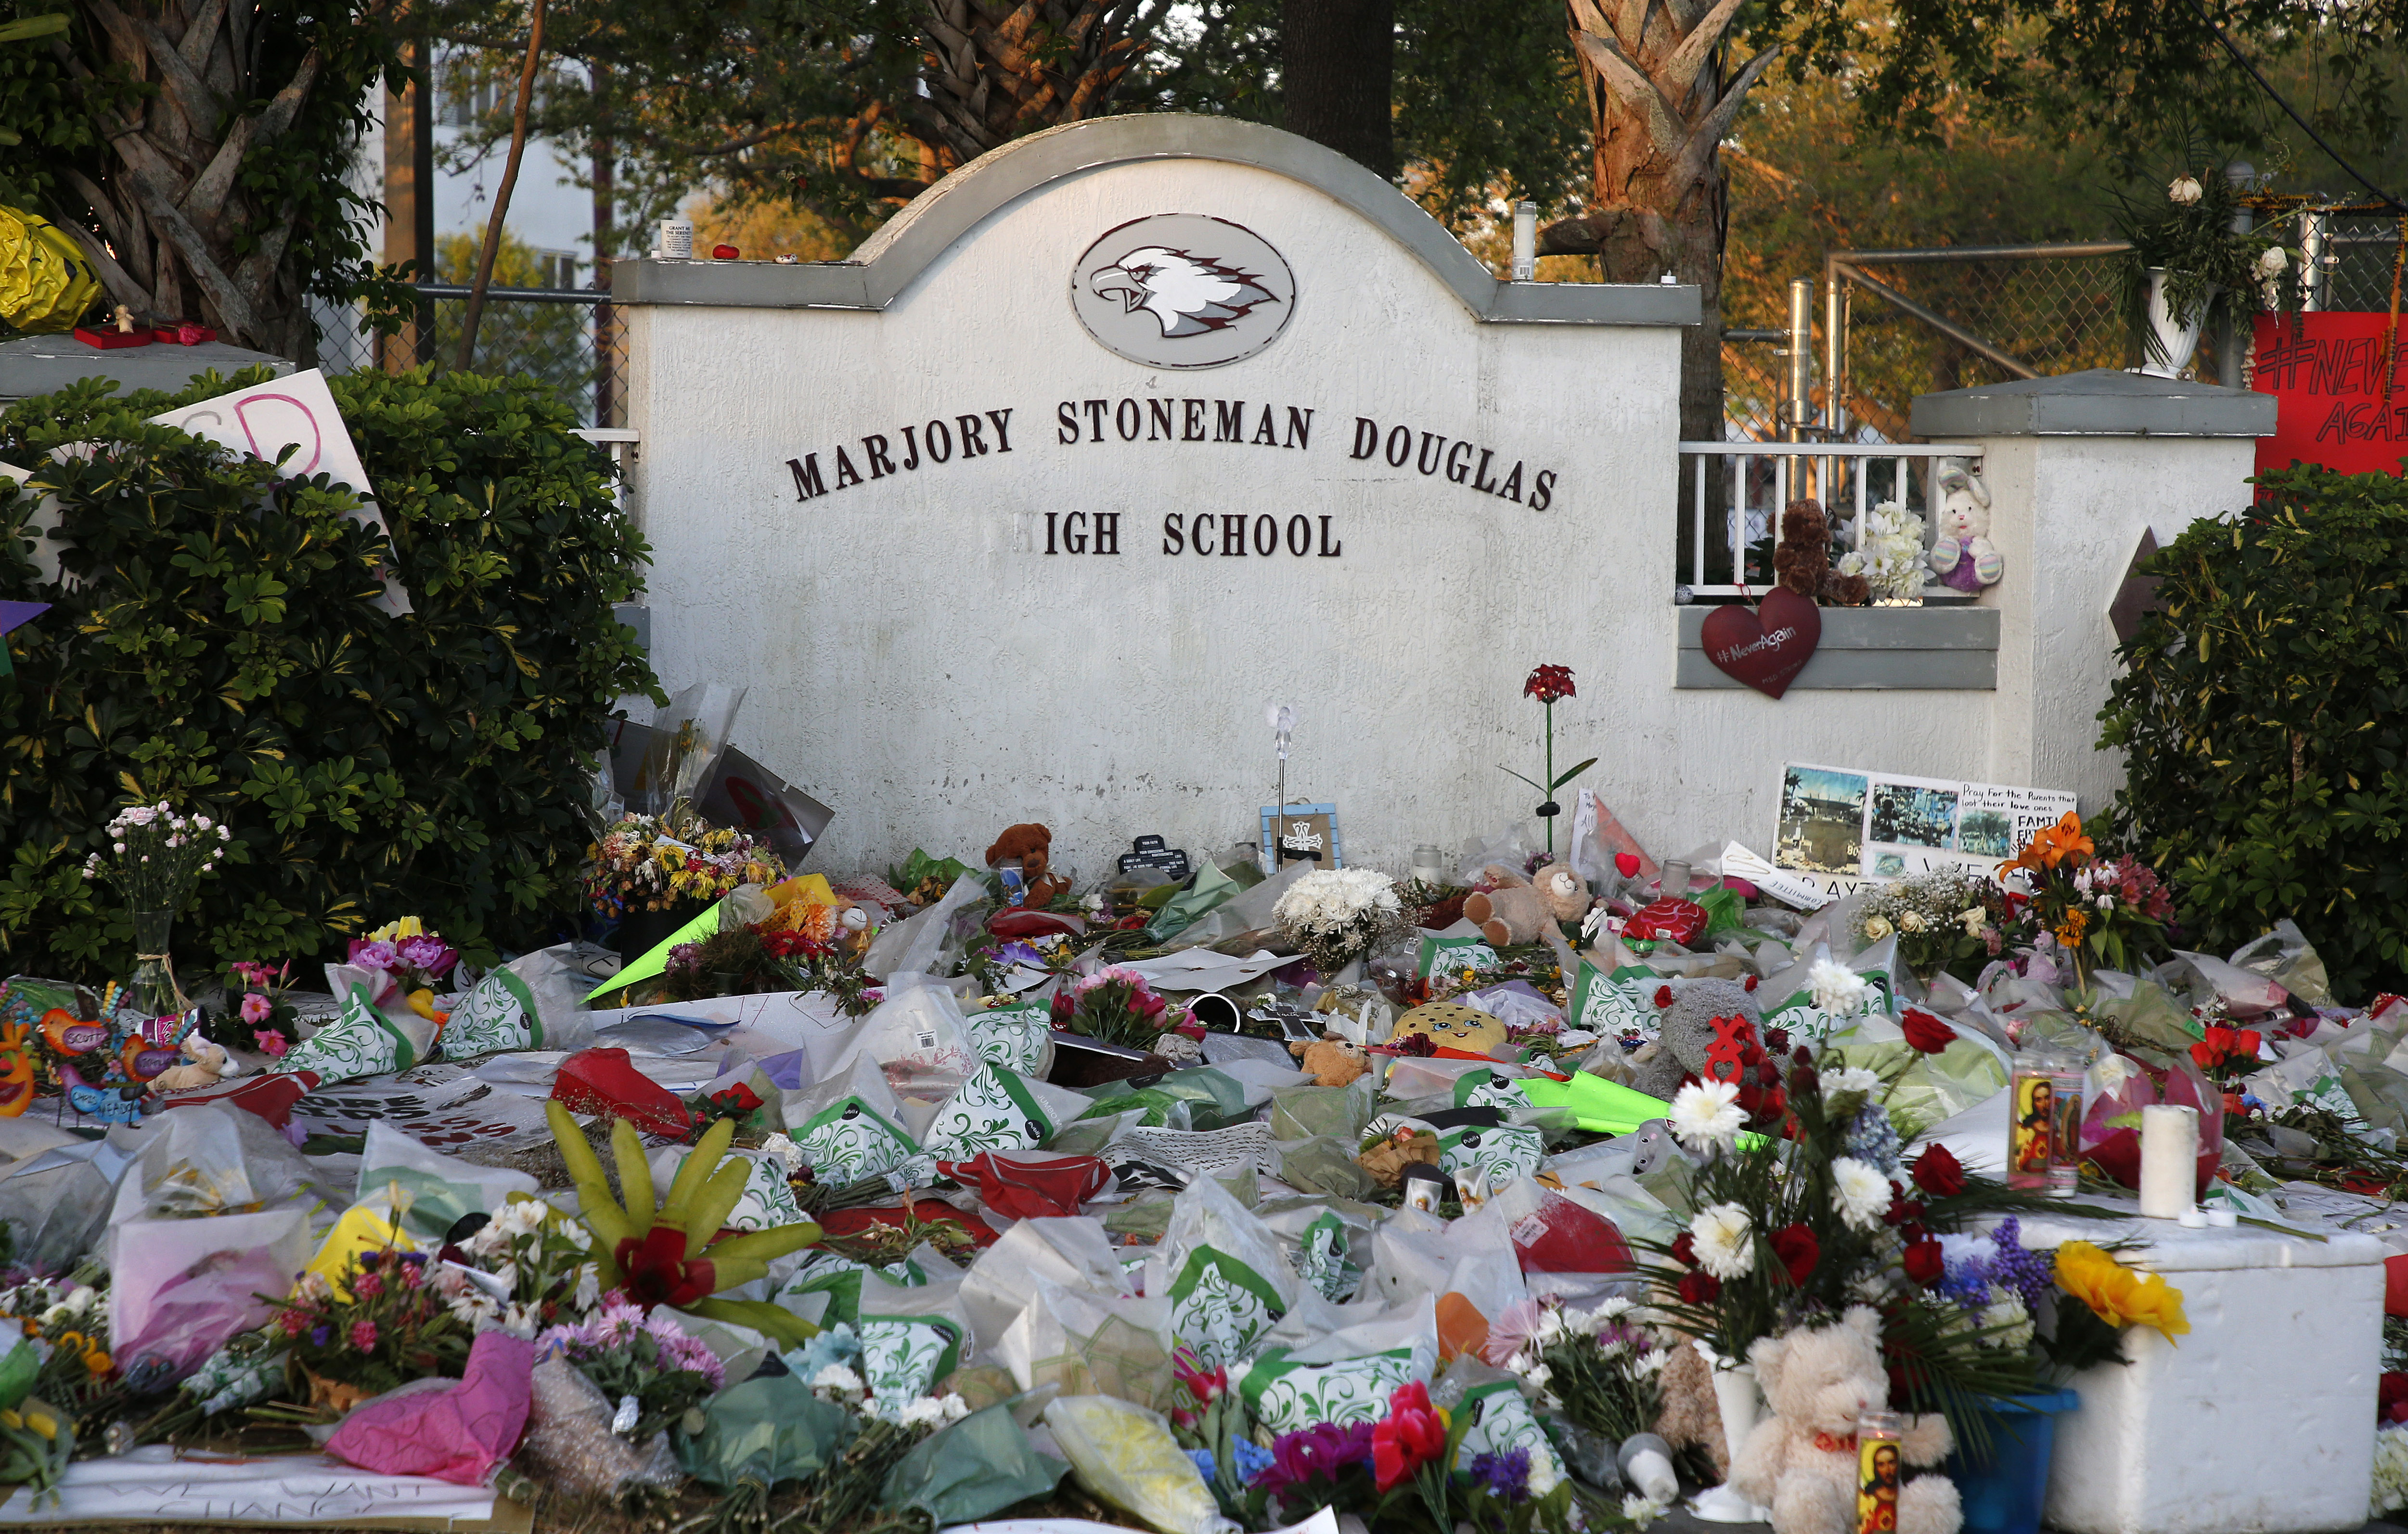 Flowers, candles and mementos sit outside one of the makeshift memorials at Marjory Stoneman Douglas High School in Parkland, Florida on February 27, 2018.